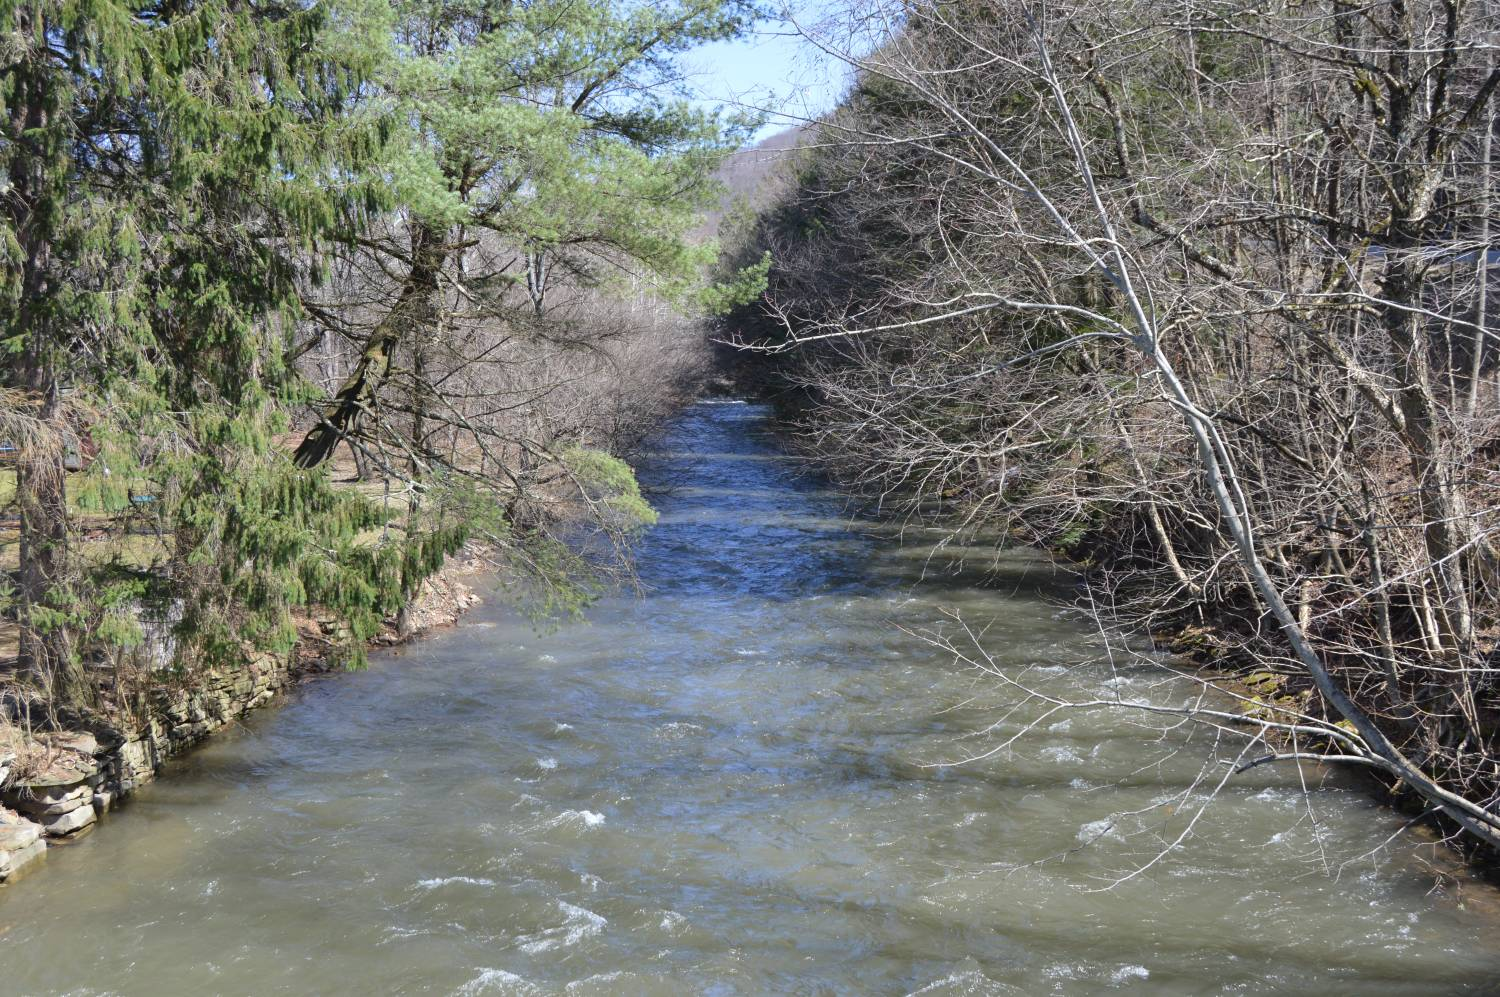 East Fork Sinnemahoning Creek at Wharton - Photo Credit: By Nyttend - Own work, Public Domain, https://commons.wikimedia.org/w/index.php?curid=39695970